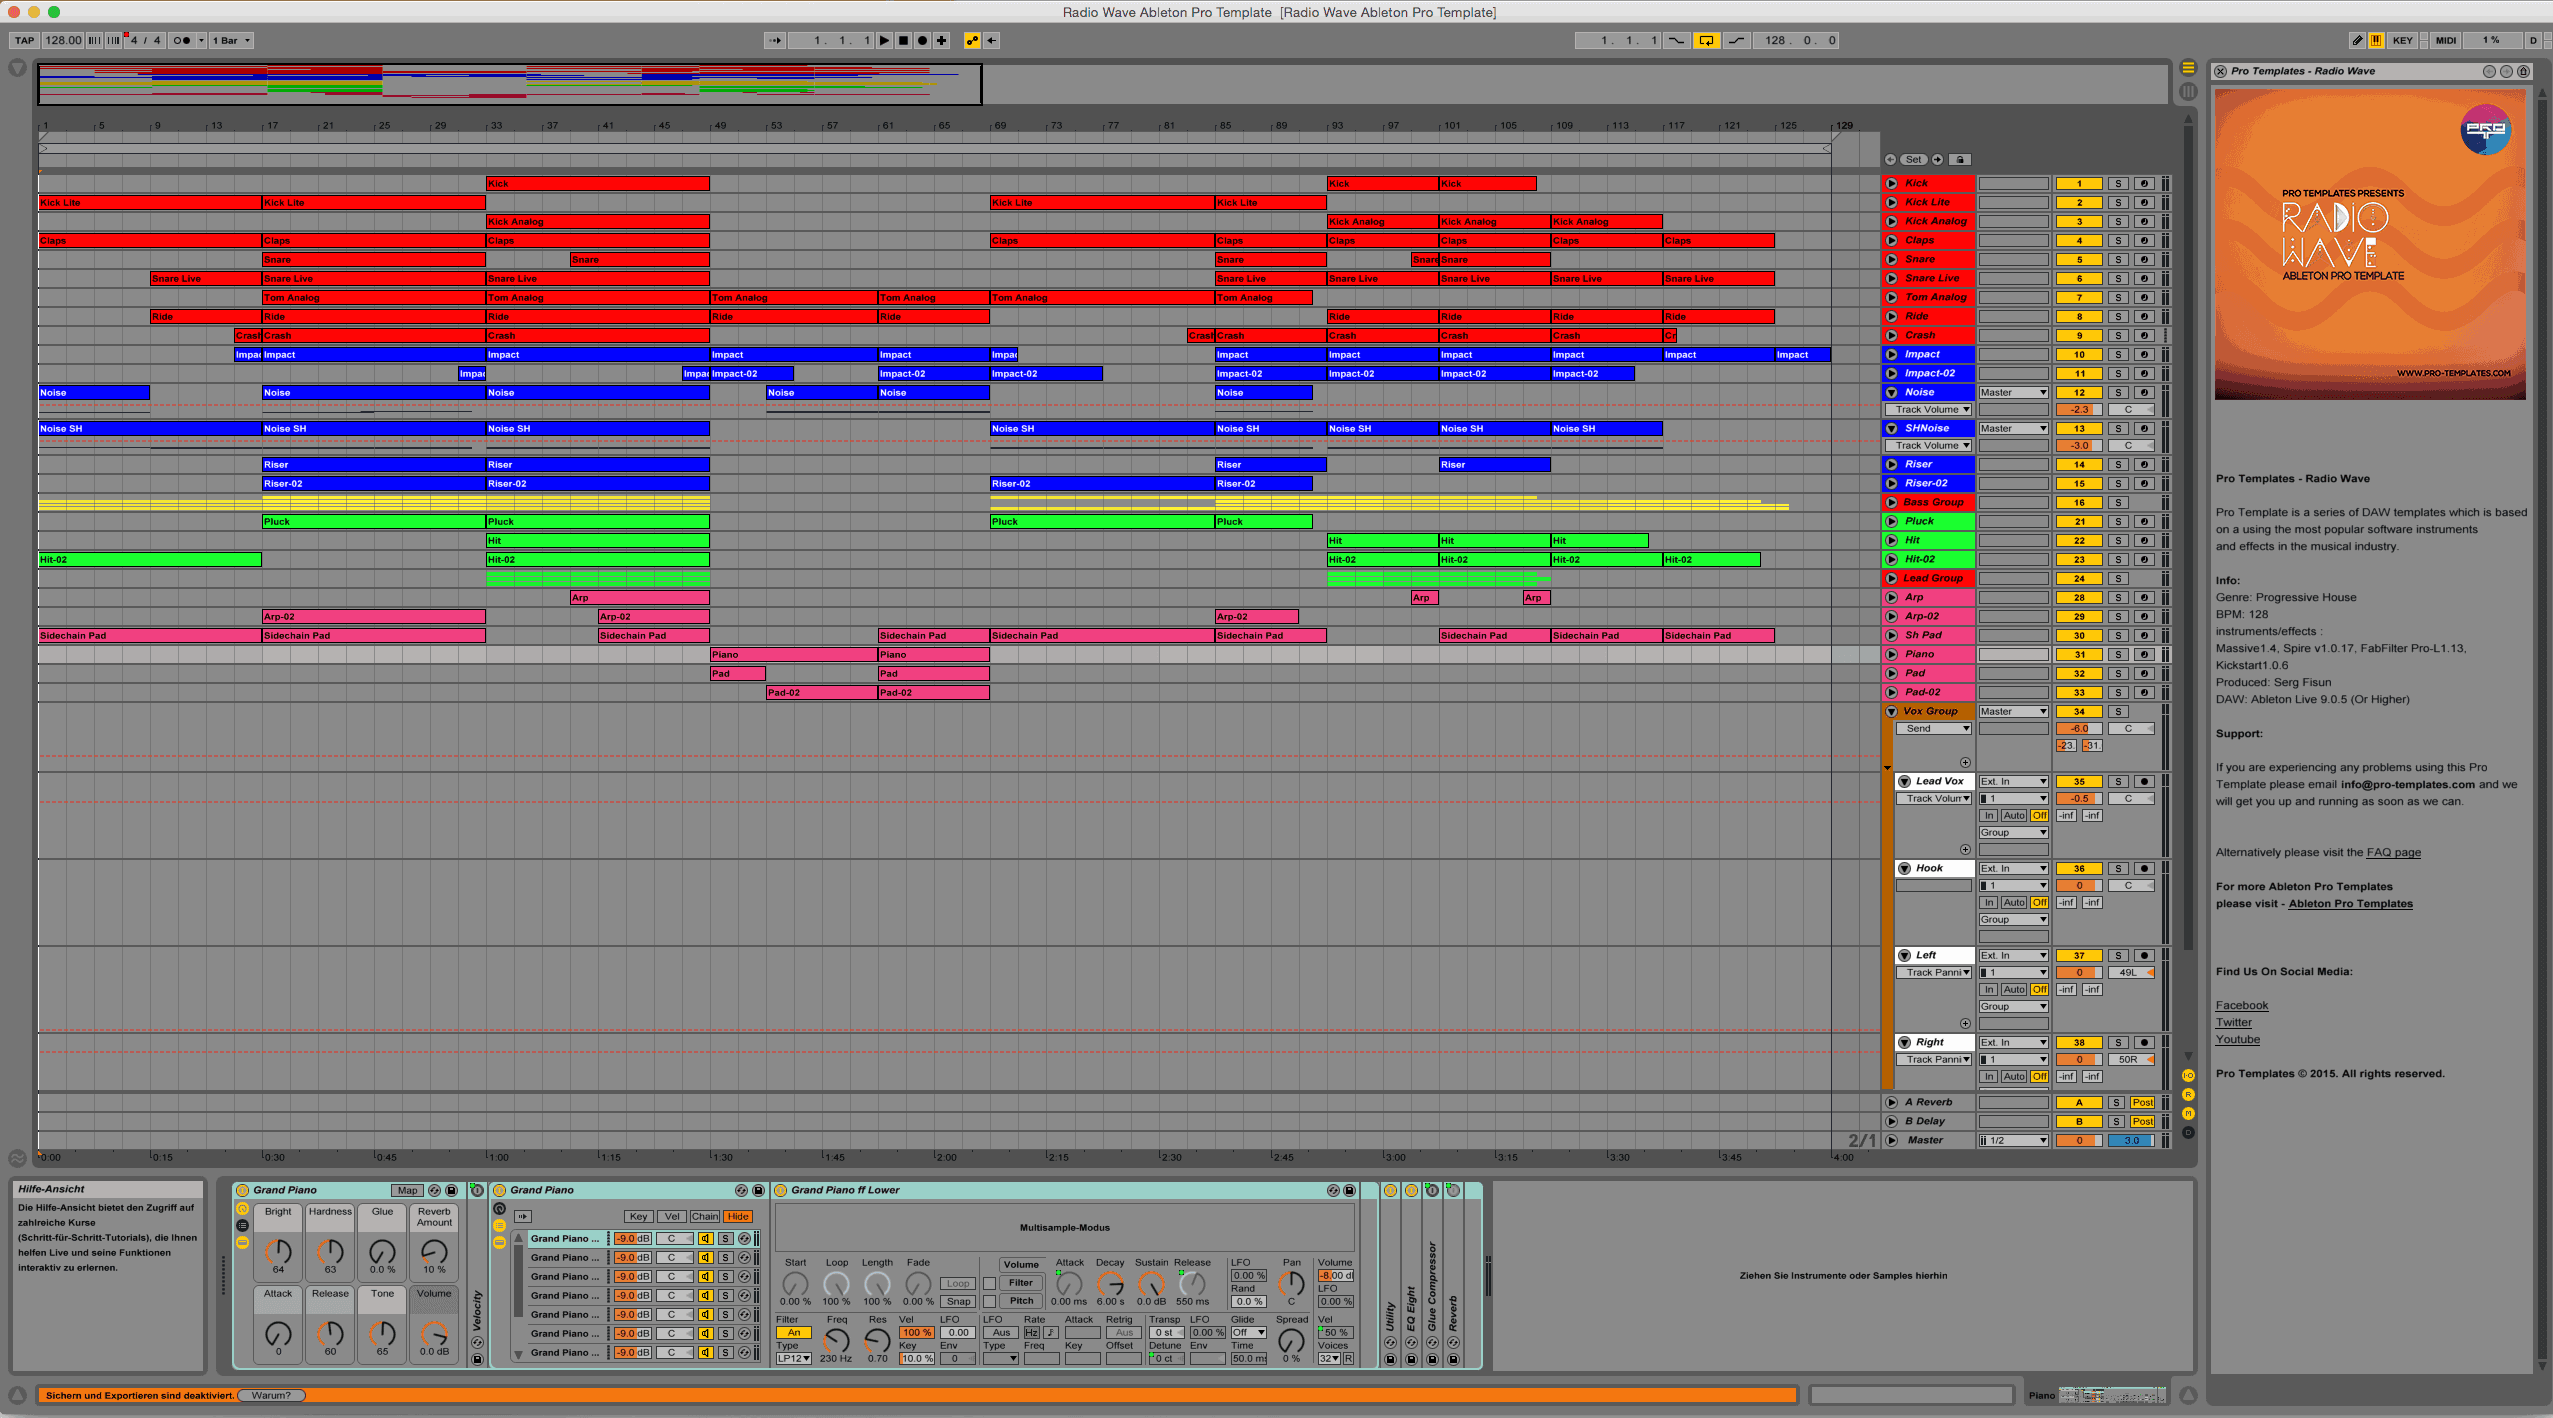 Radio Wave Ableton Pro Template Project